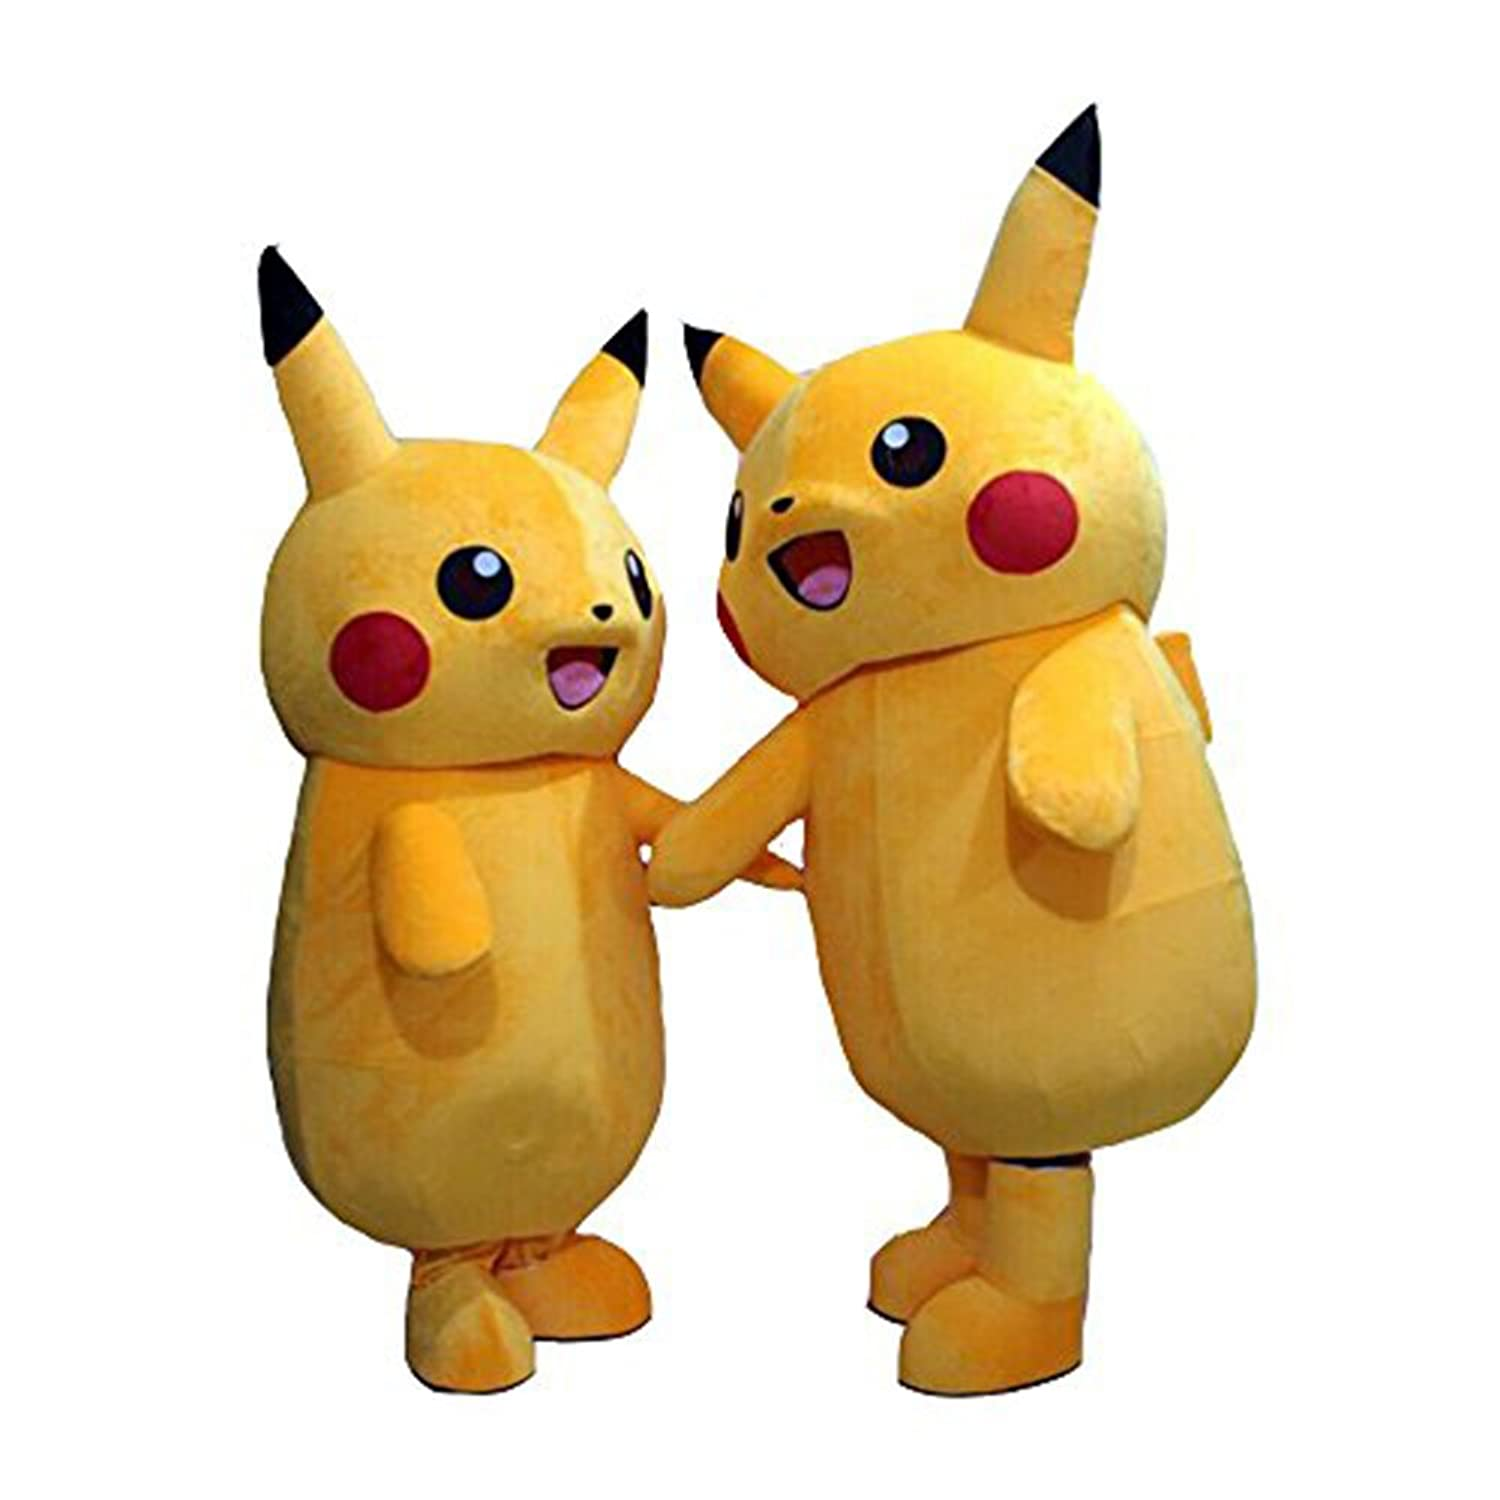 Pokemon Pikachu Mascot Costume